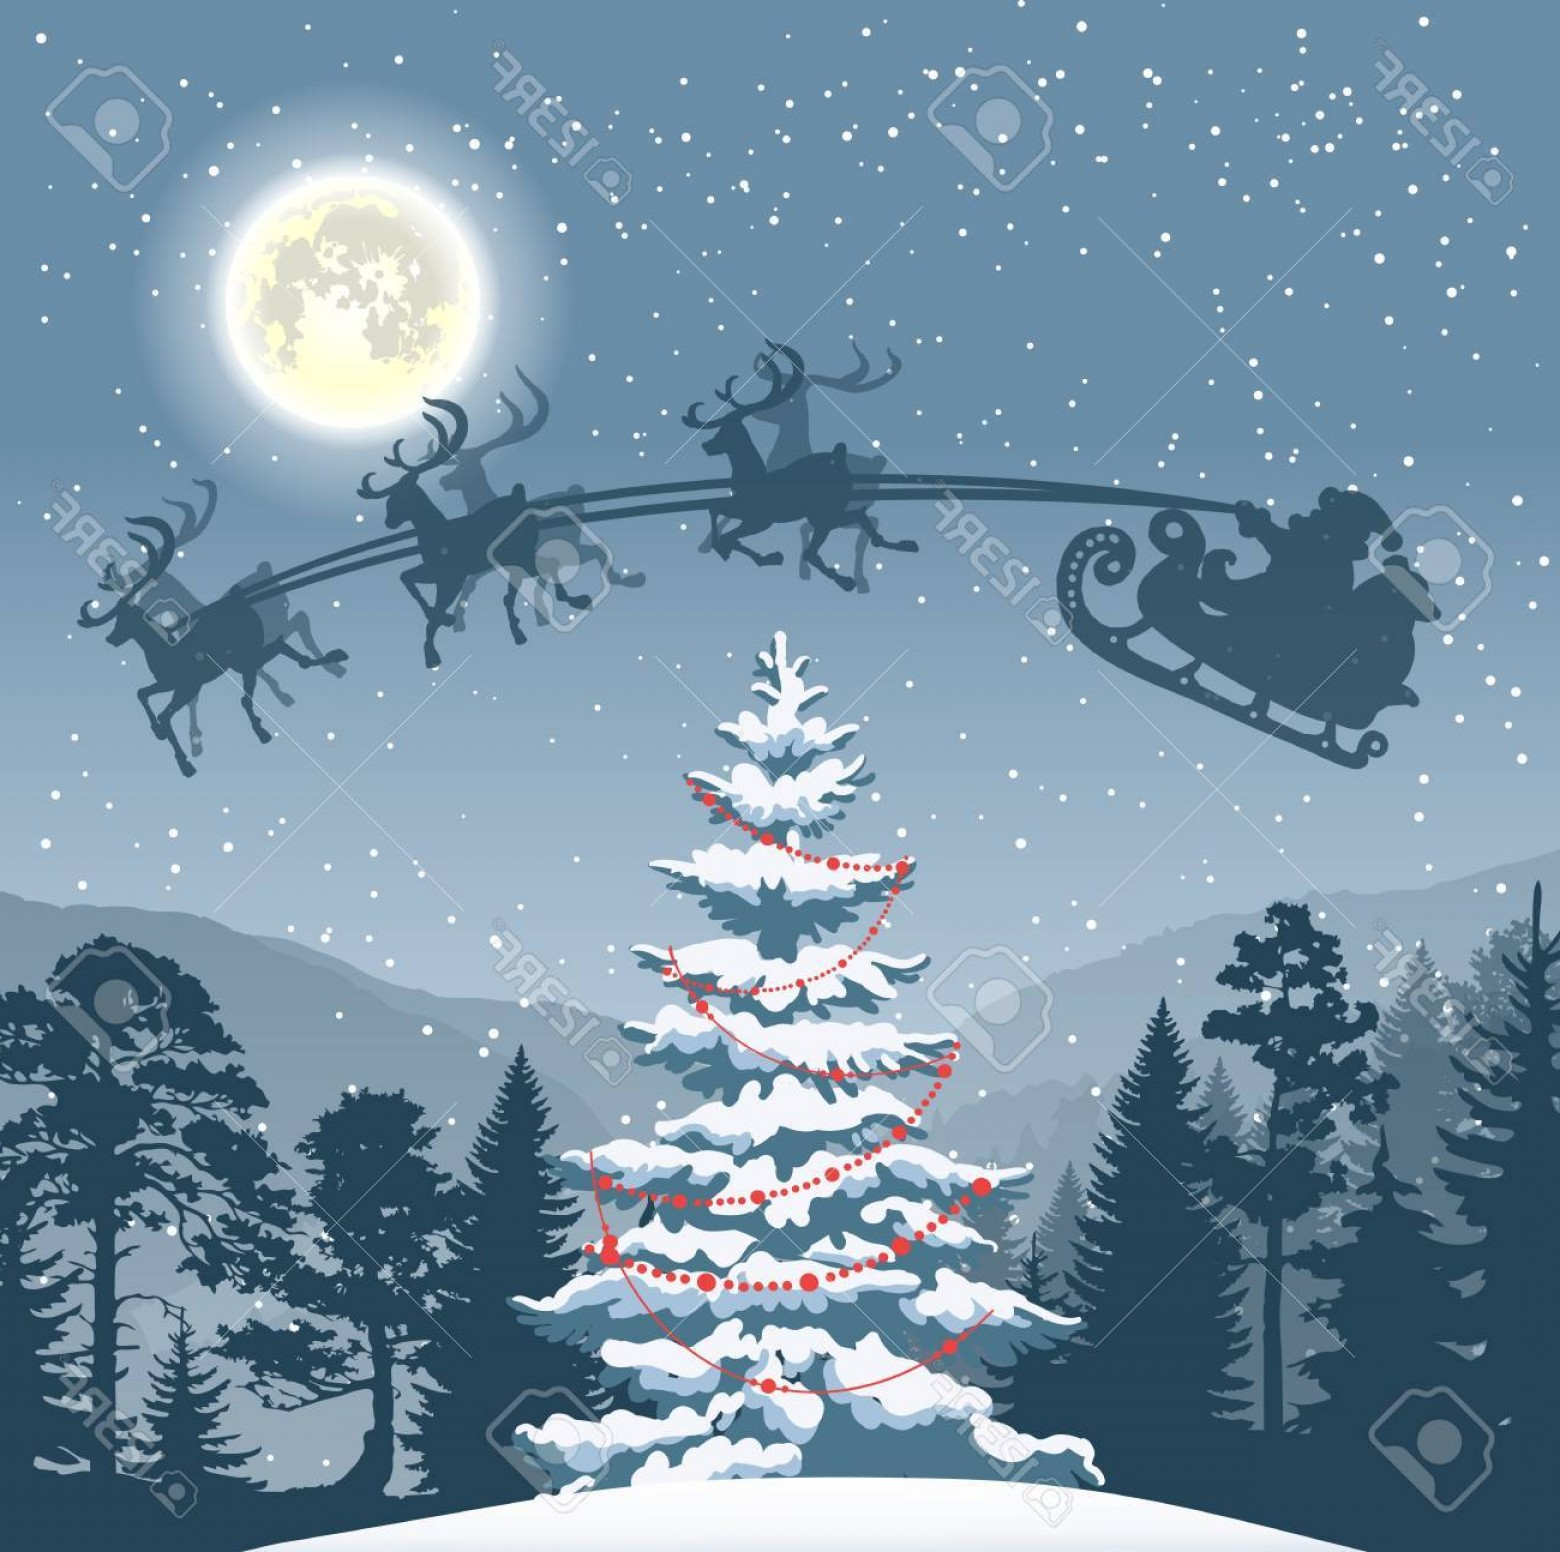 Vector-Based Grayscale Christmas: Photostock Vector Greyscale Christmas Design Element With Fir Tree In Forest Moon Santa Claus And Flying Reindeers For